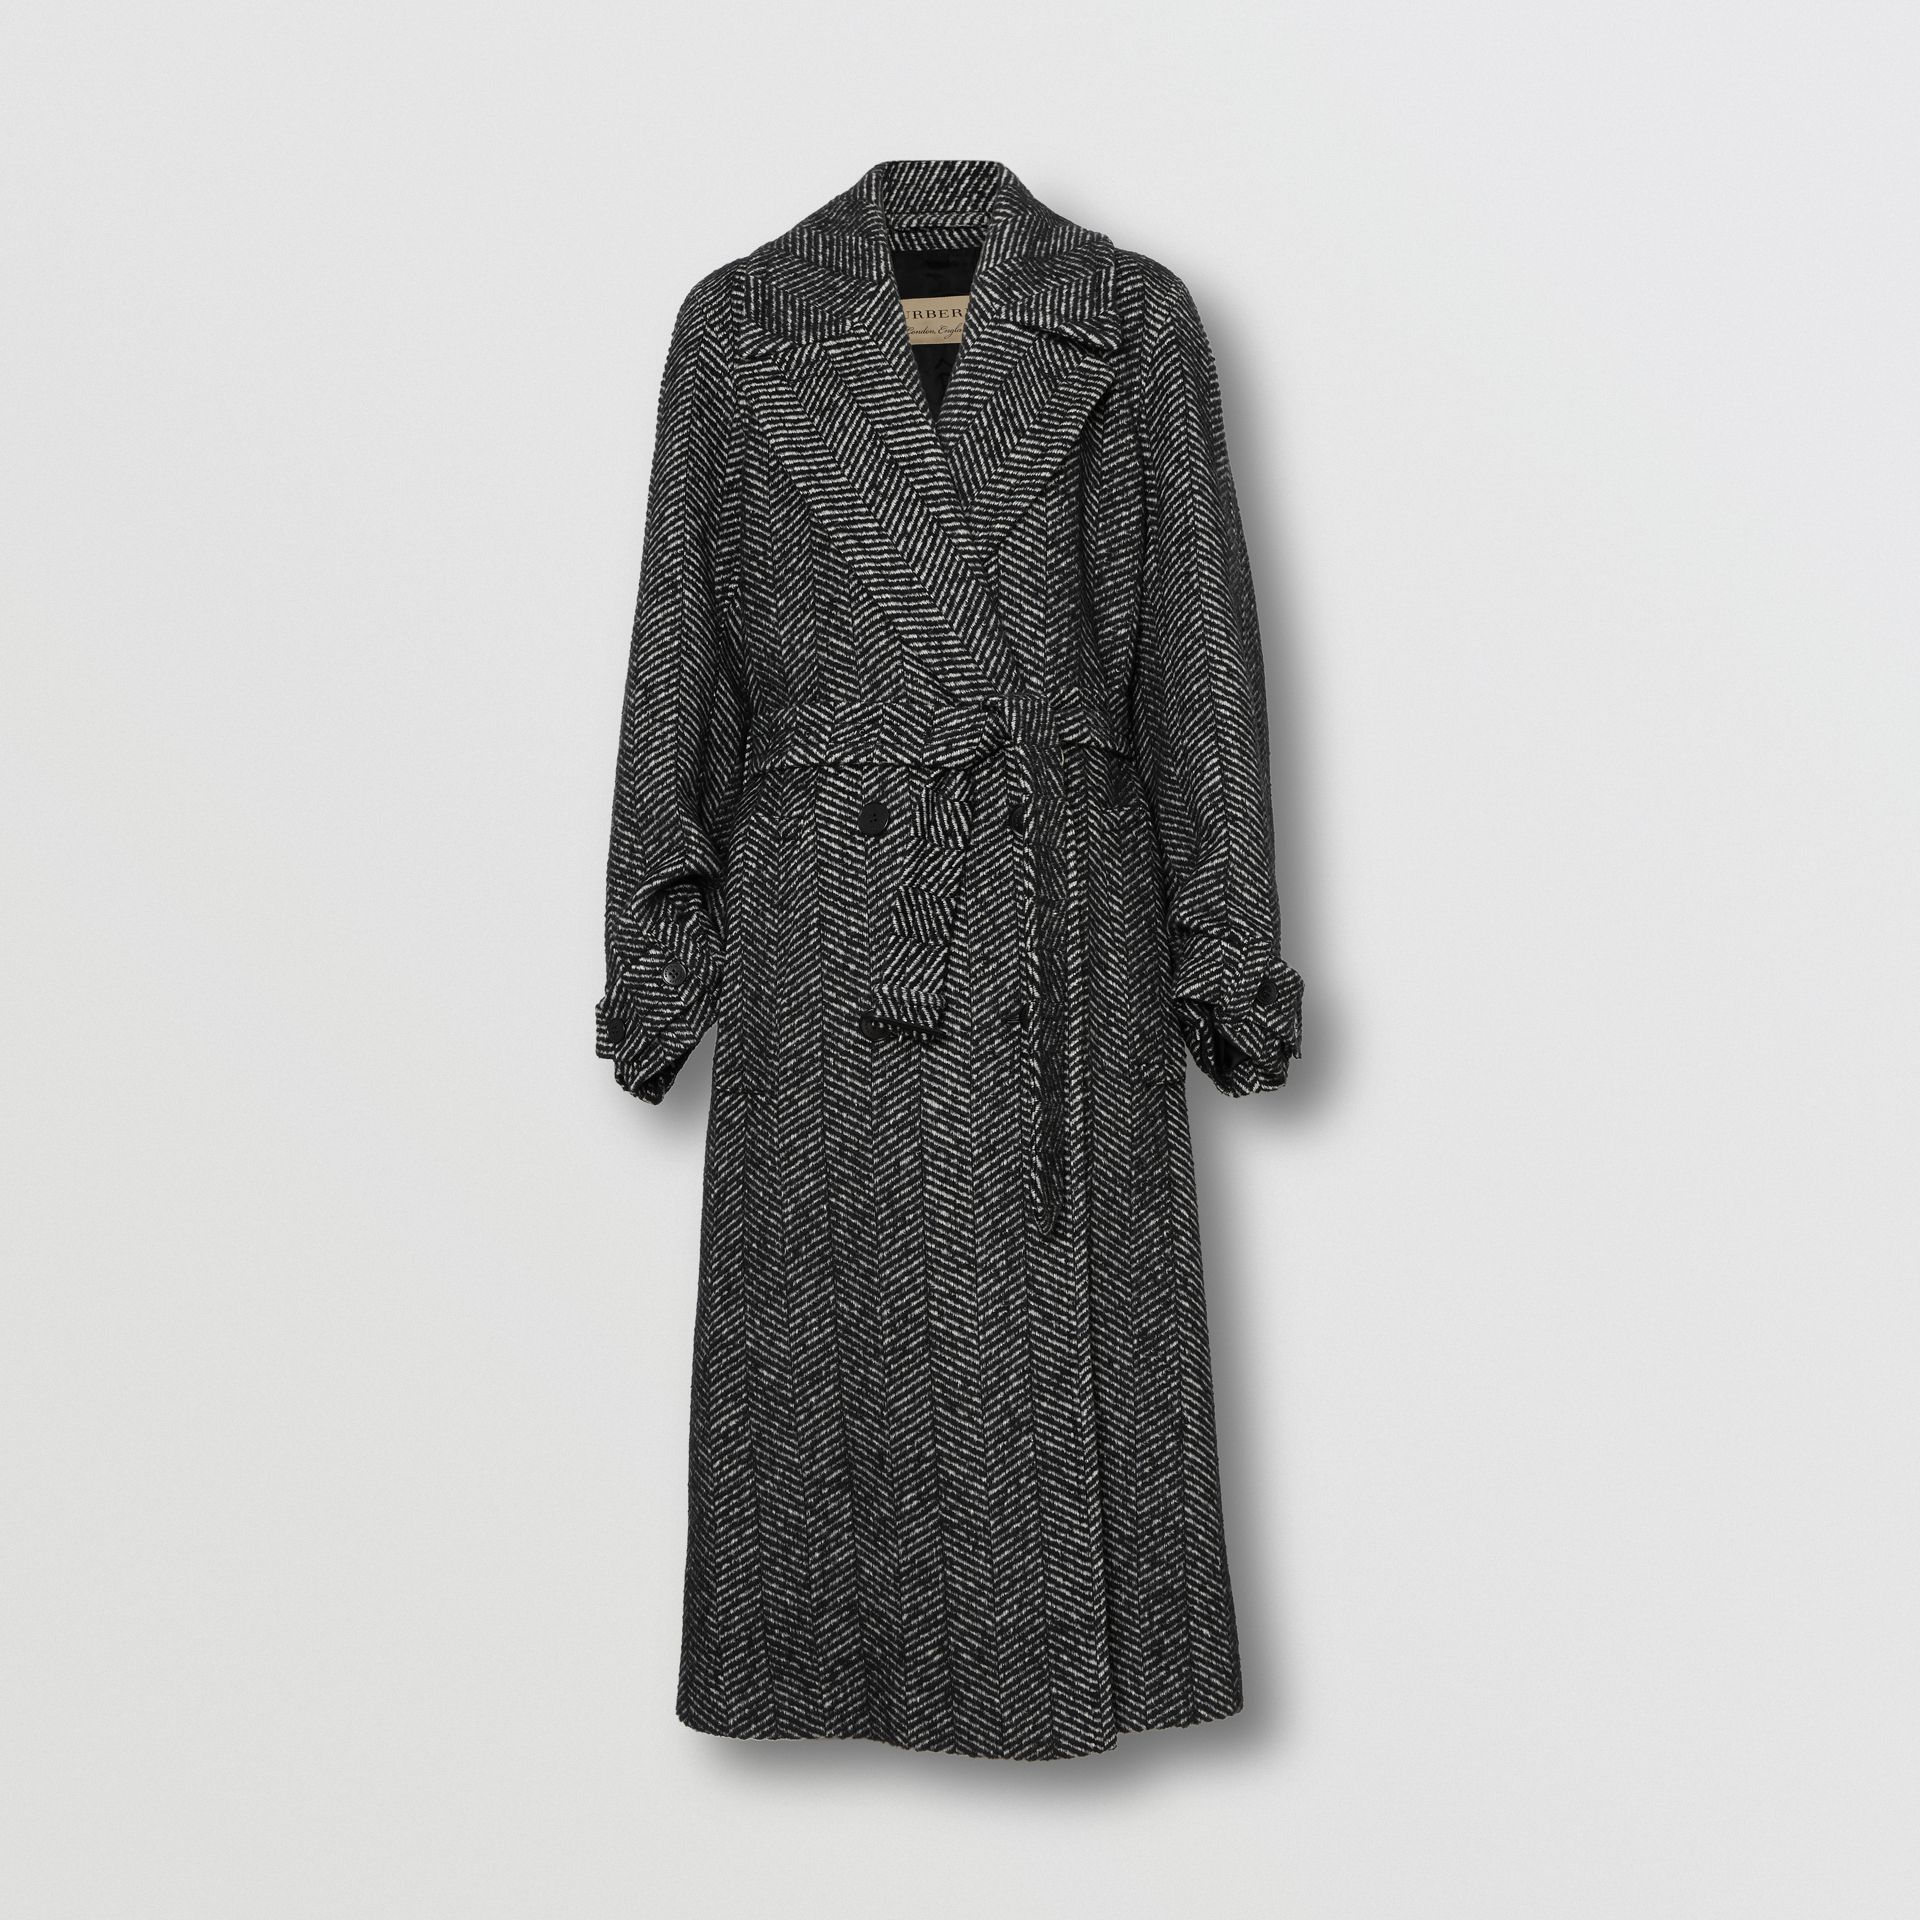 Herringbone Wool Silk Blend Double-breasted Coat in Black - Women | Burberry Canada - gallery image 3